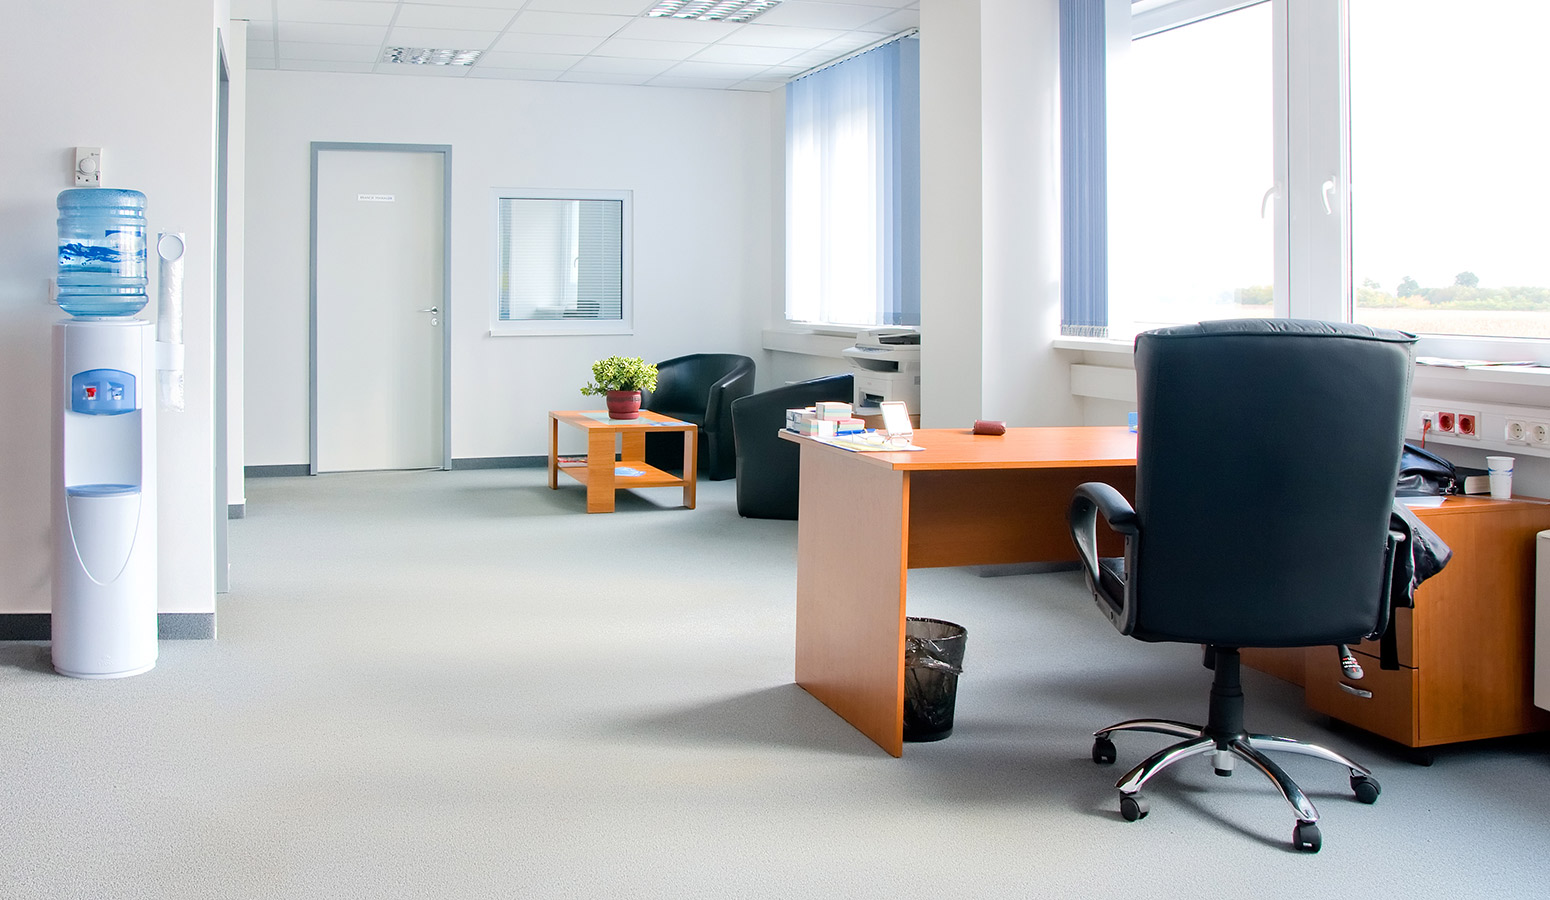 Office Cleaning Services Capital Star